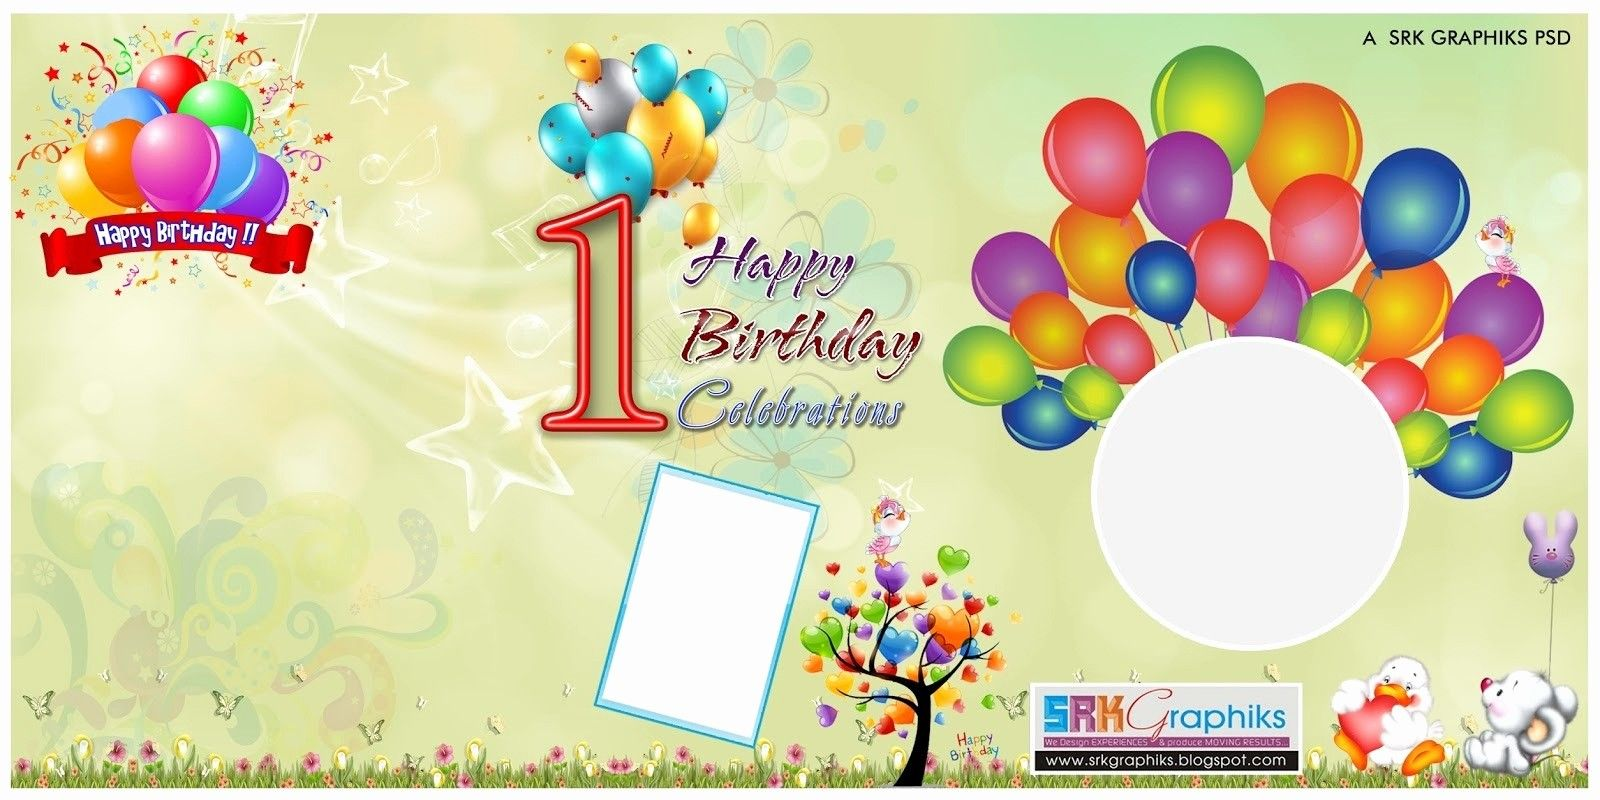 Birthday Card Template Photoshop Addictionary